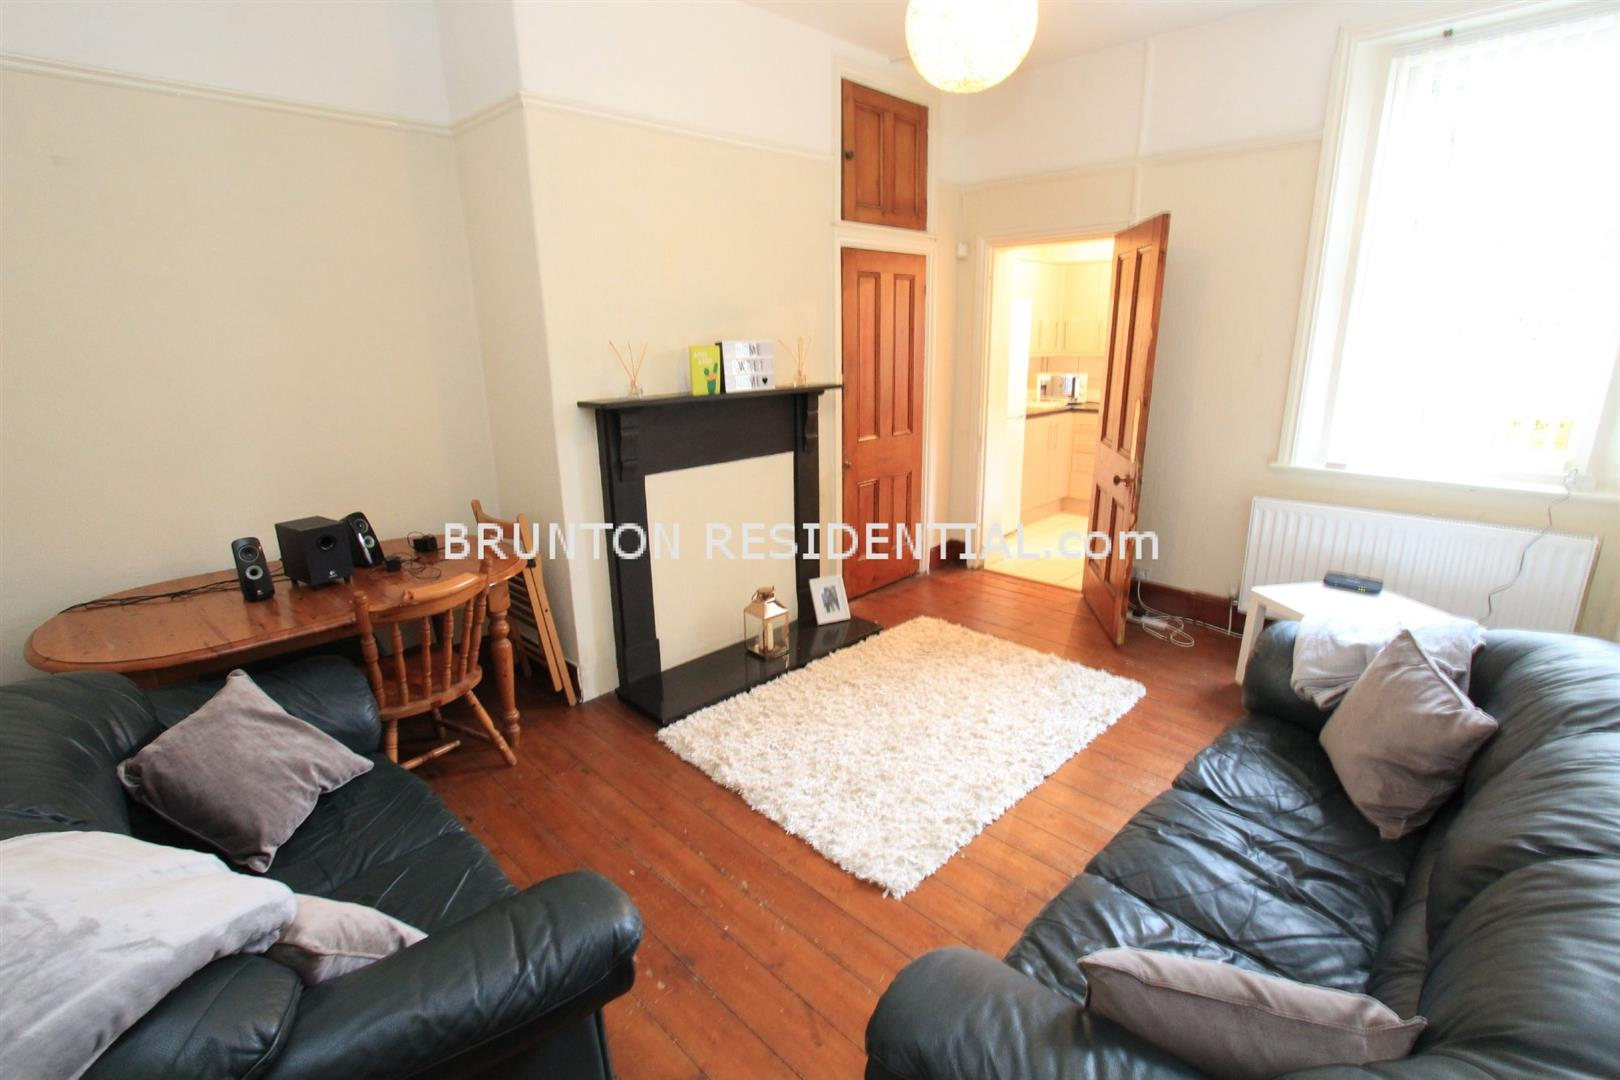 2 bed flat to rent in Newcastle Upon Tyne, NE2 1DN, NE2